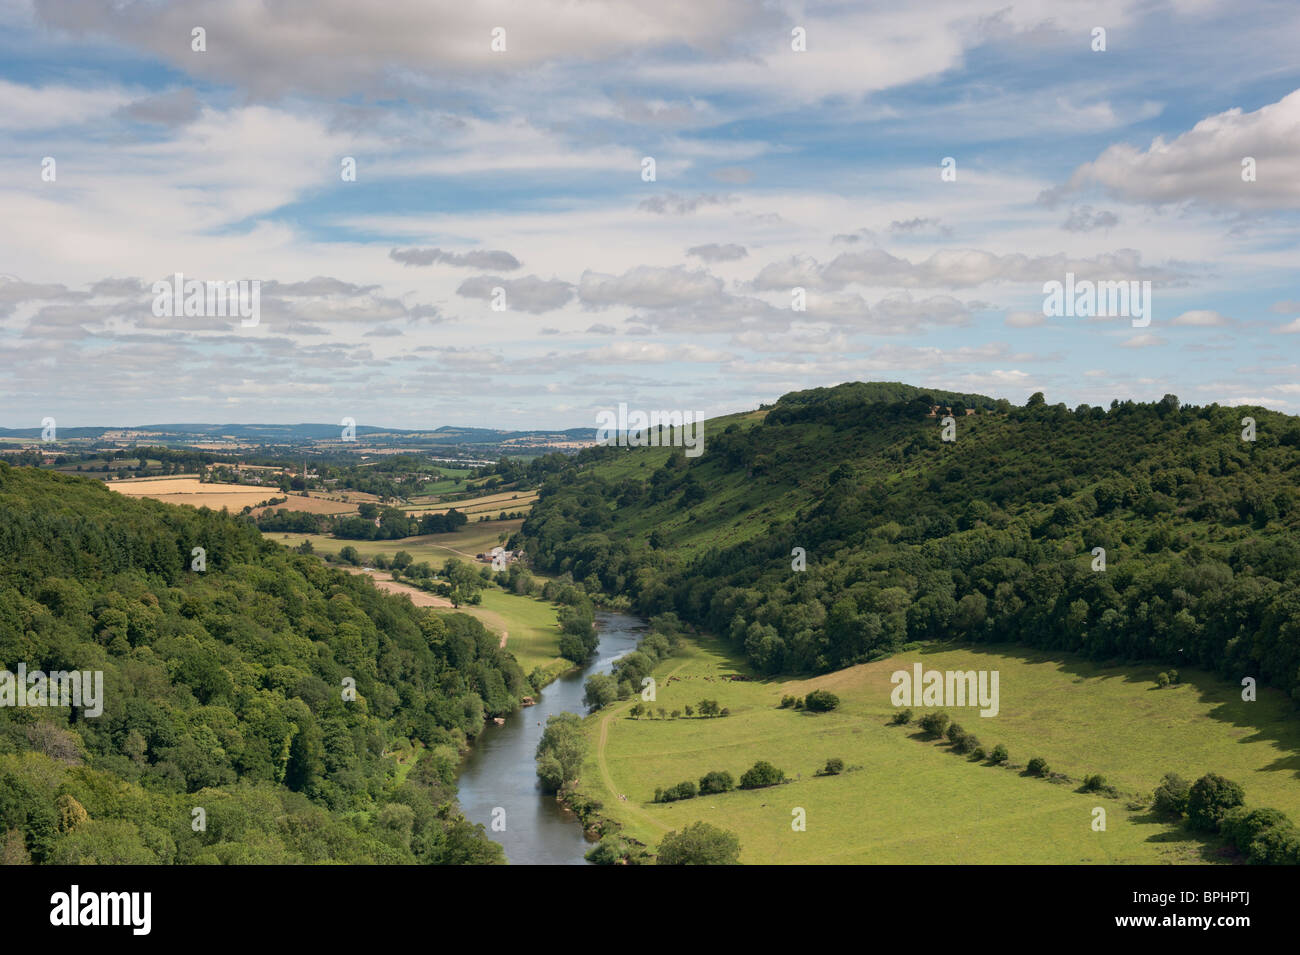 View of the river wye, from Symons Yat rock, in the wye valley, Forest of Dean - Stock Image